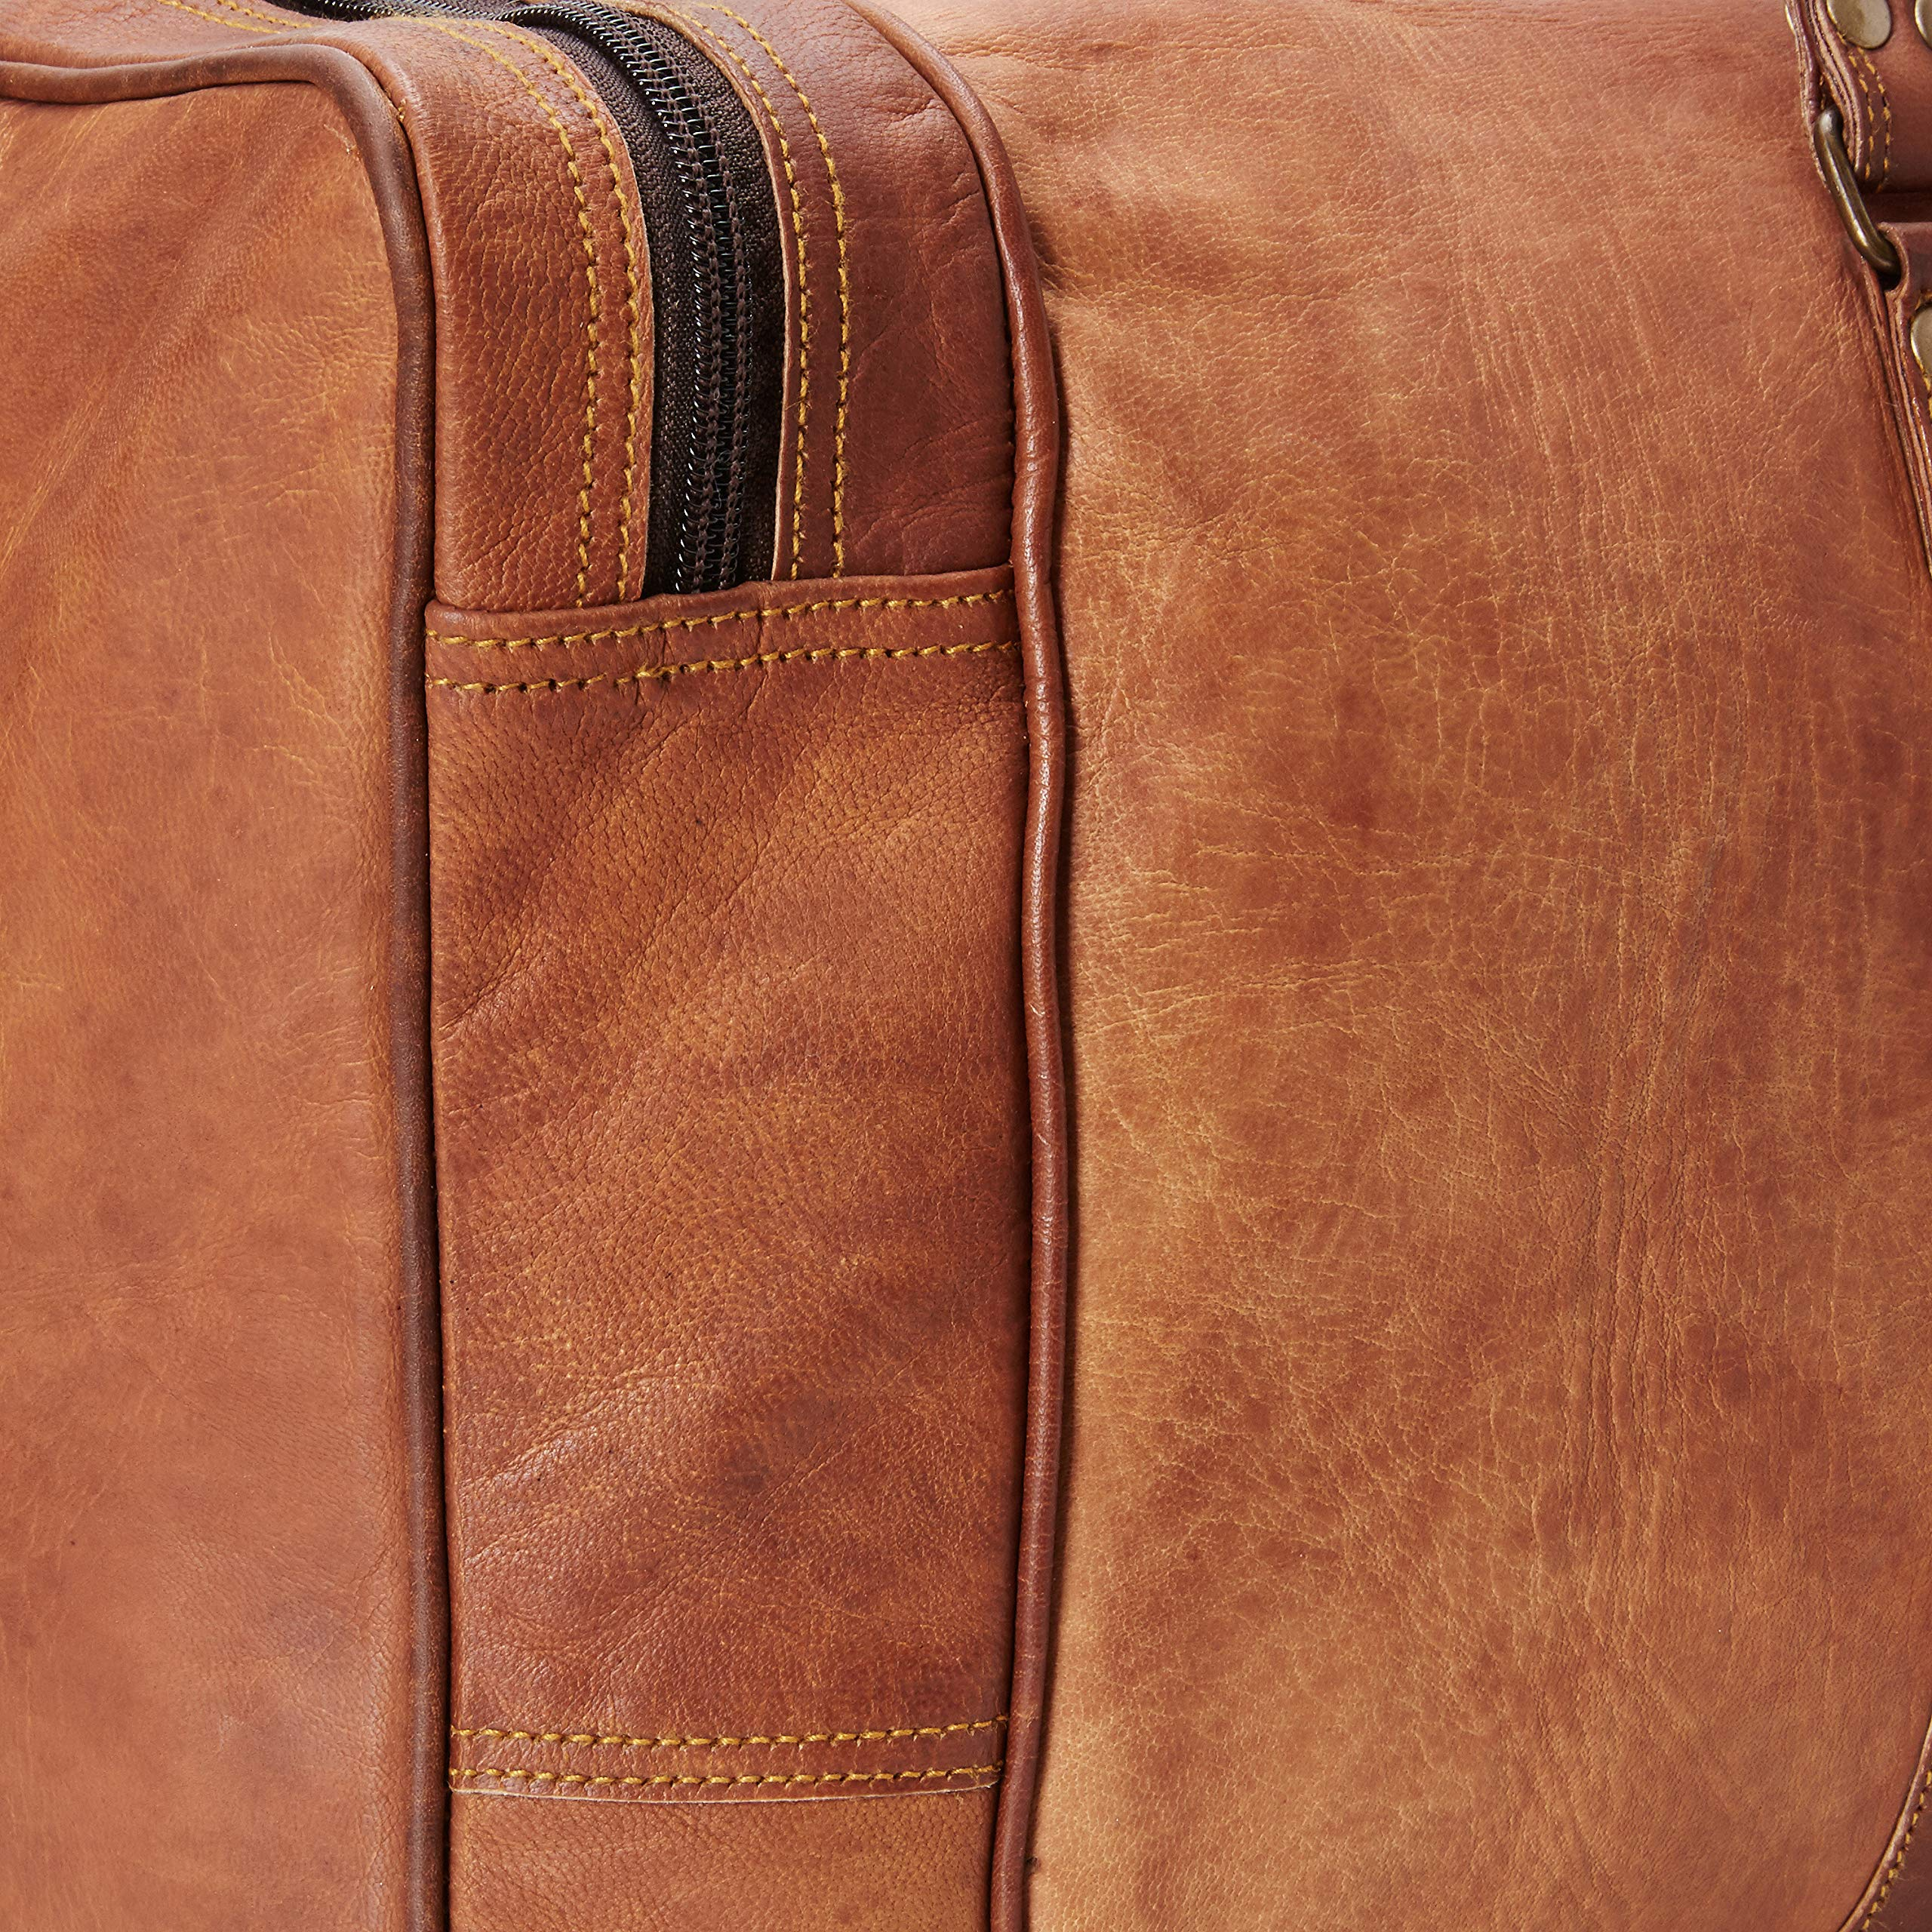 Leather 24 Inch Square Duffel Travel Gym Sports Overnight Weekend Leather Bag by Ruzioon (Image #4)